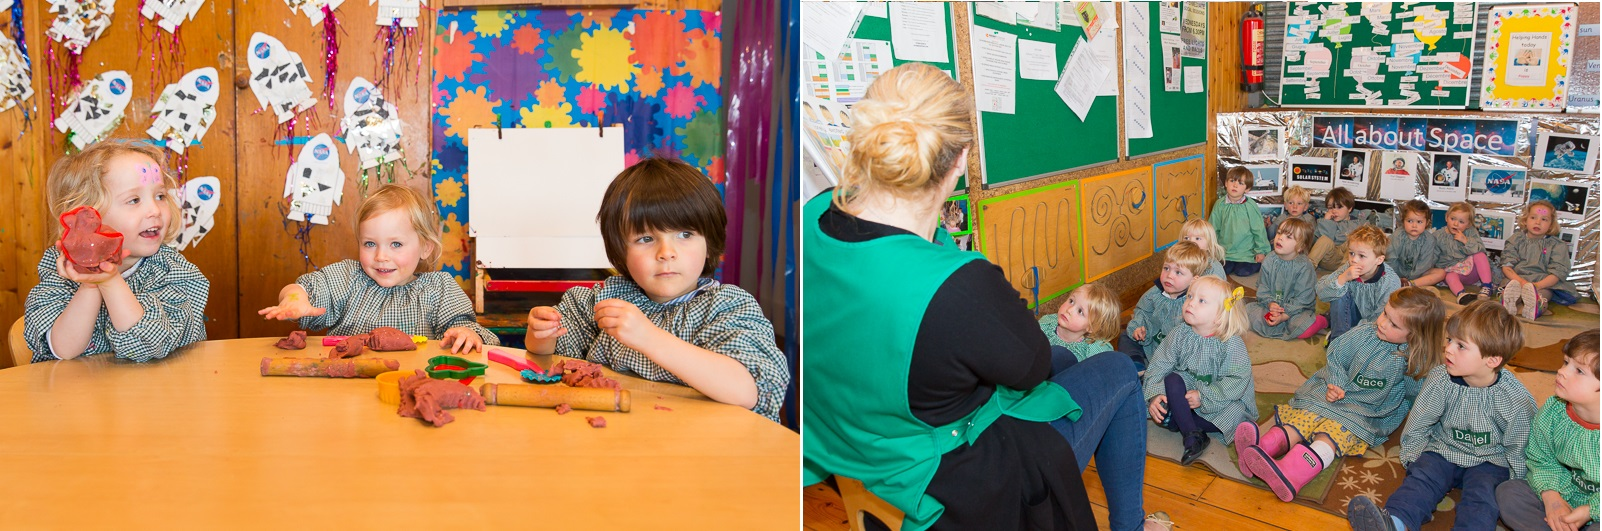 A school day at Schoolroom Two Montessori nursery